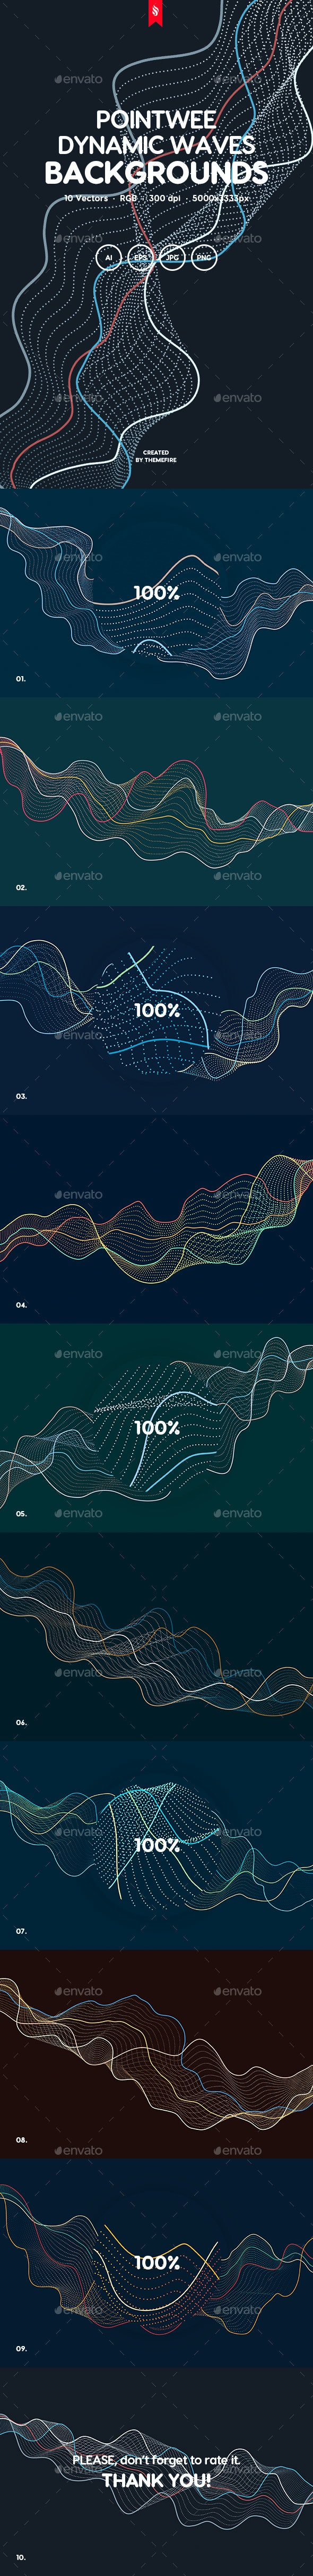 Pointwee - Dynamic Waves of Dots and Lines Vector Backgrounds - Tech / Futuristic Backgrounds